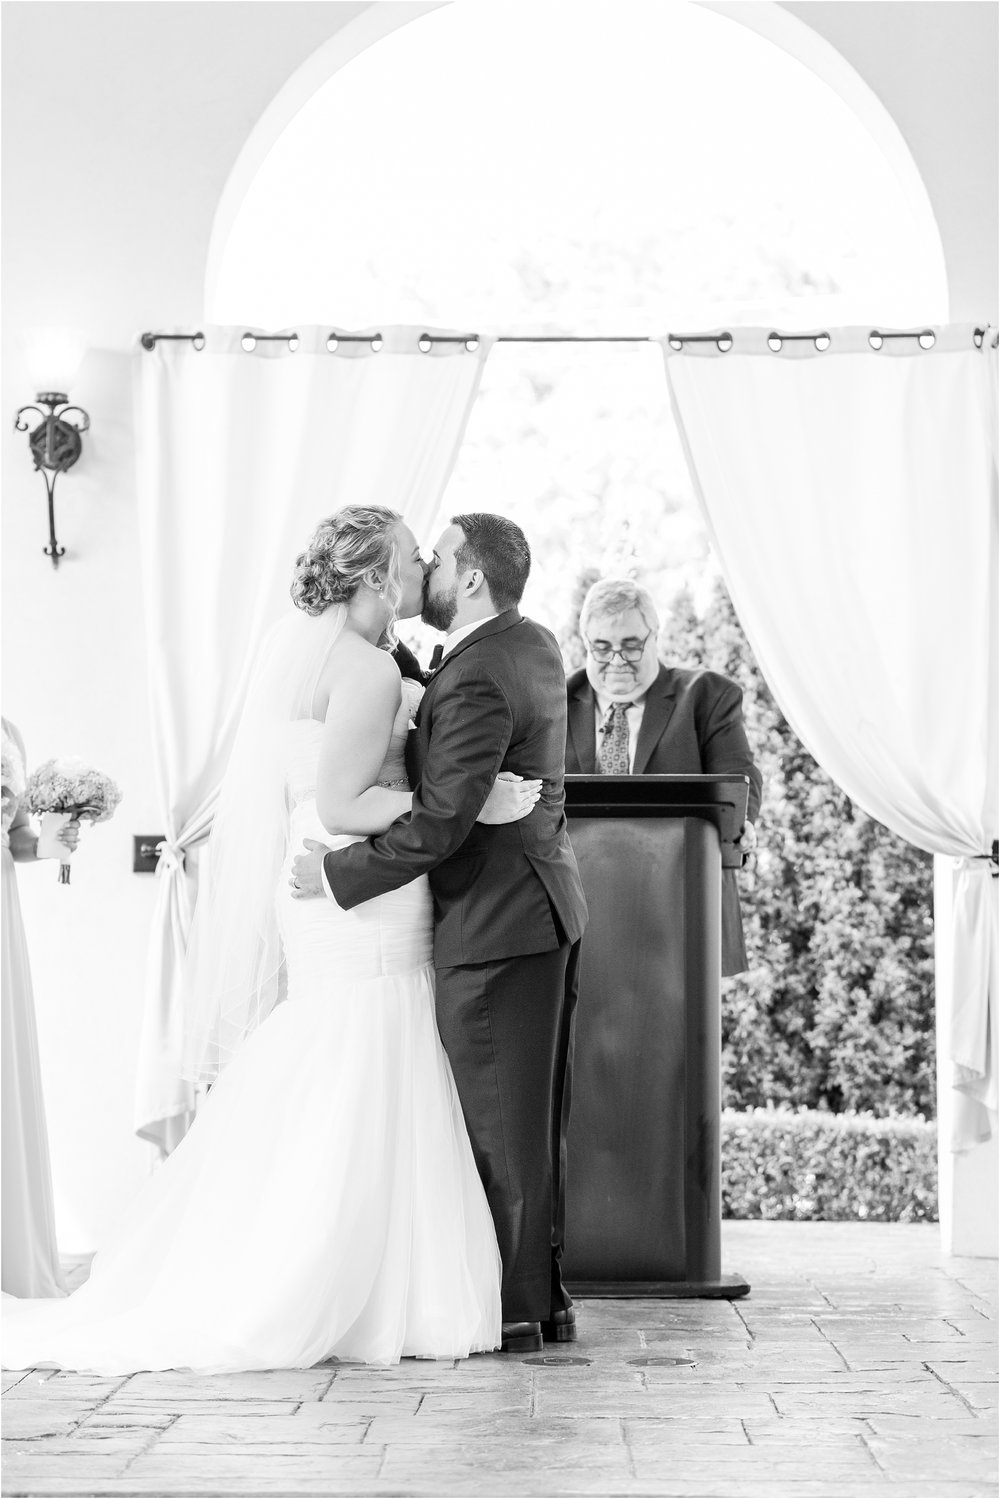 joyful-and-candid-navy-blush-wedding-photos-at-crystal-gardens-in-howell-mi-by-courtney-carolyn-photography_0053.jpg